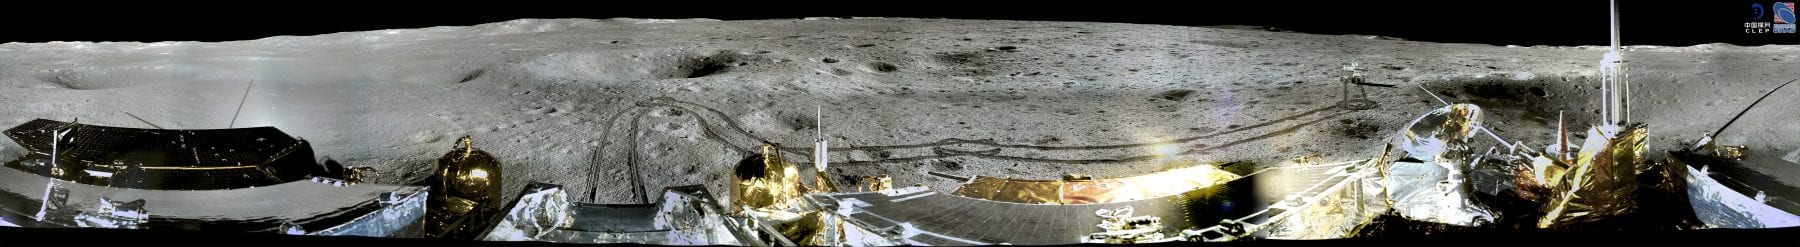 Another 360-degree circular shot image from the far side of the Moon. Credit: CLEP/ Lunar and Planetary Multimedia Database